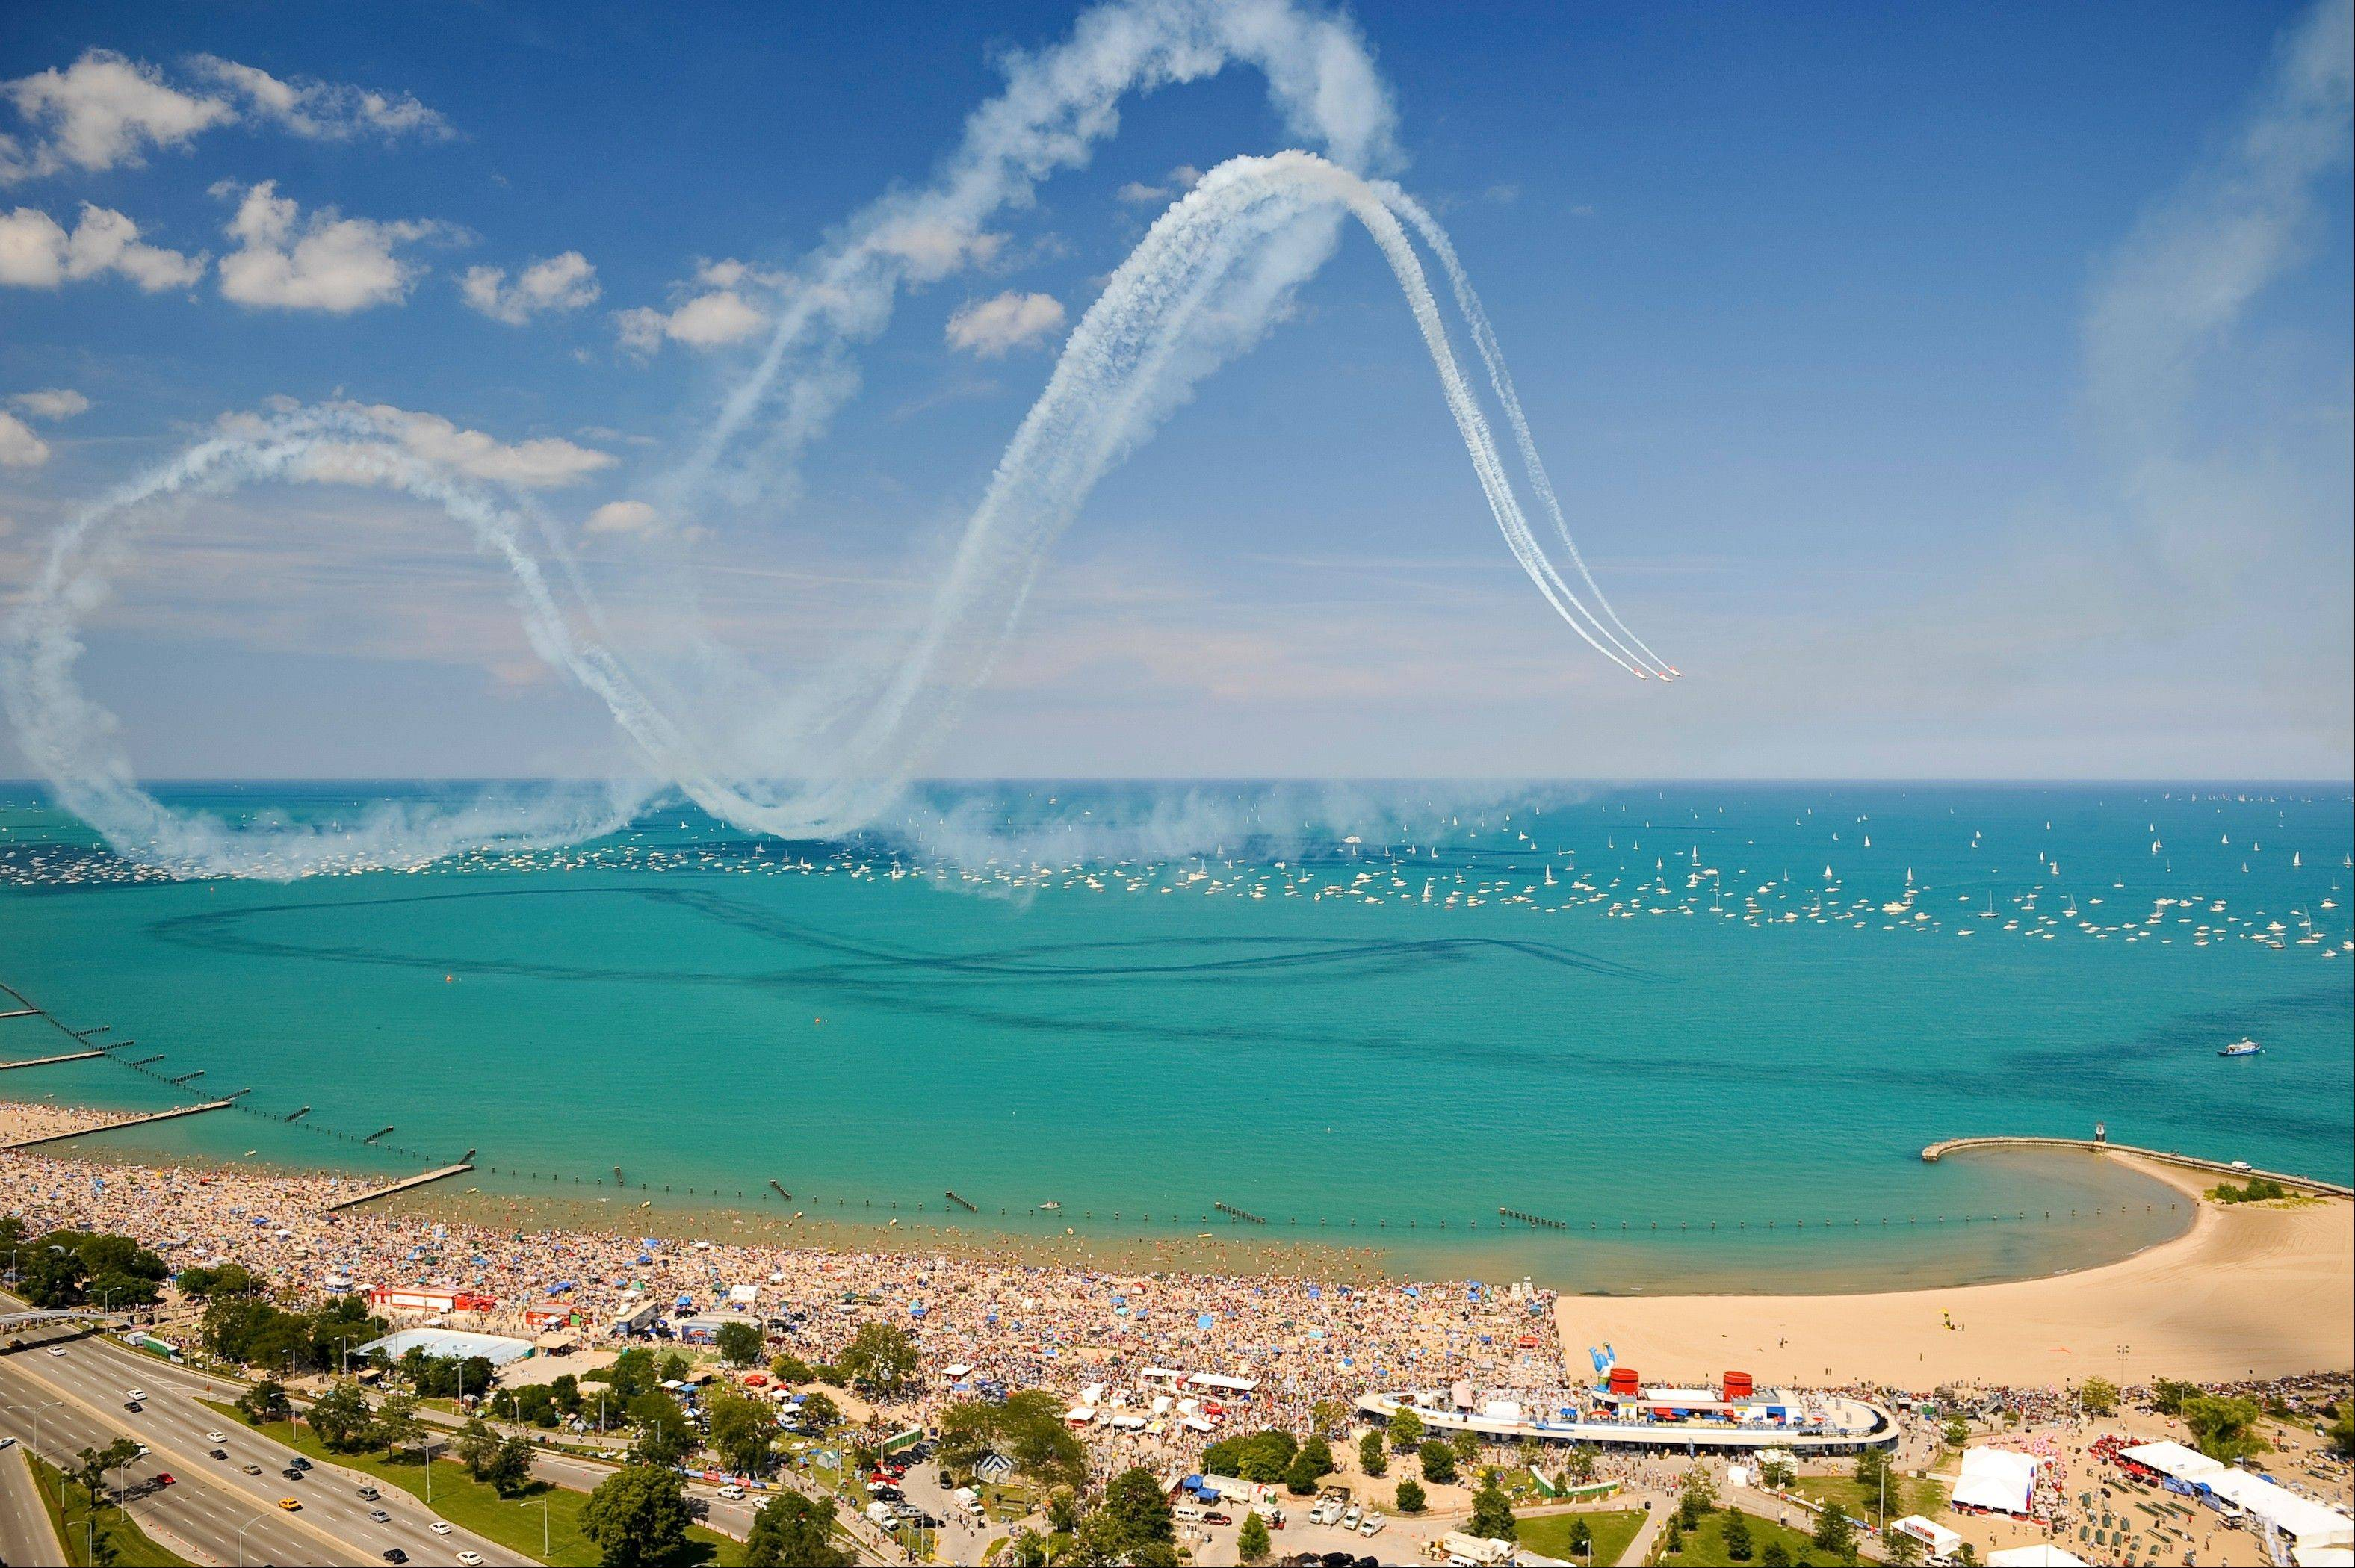 The AeroShell Aerobatic Team will dive and maneuver in front of crowds on North Avenue Beach Saturday and Sunday at the Chicago Air & Water Show.